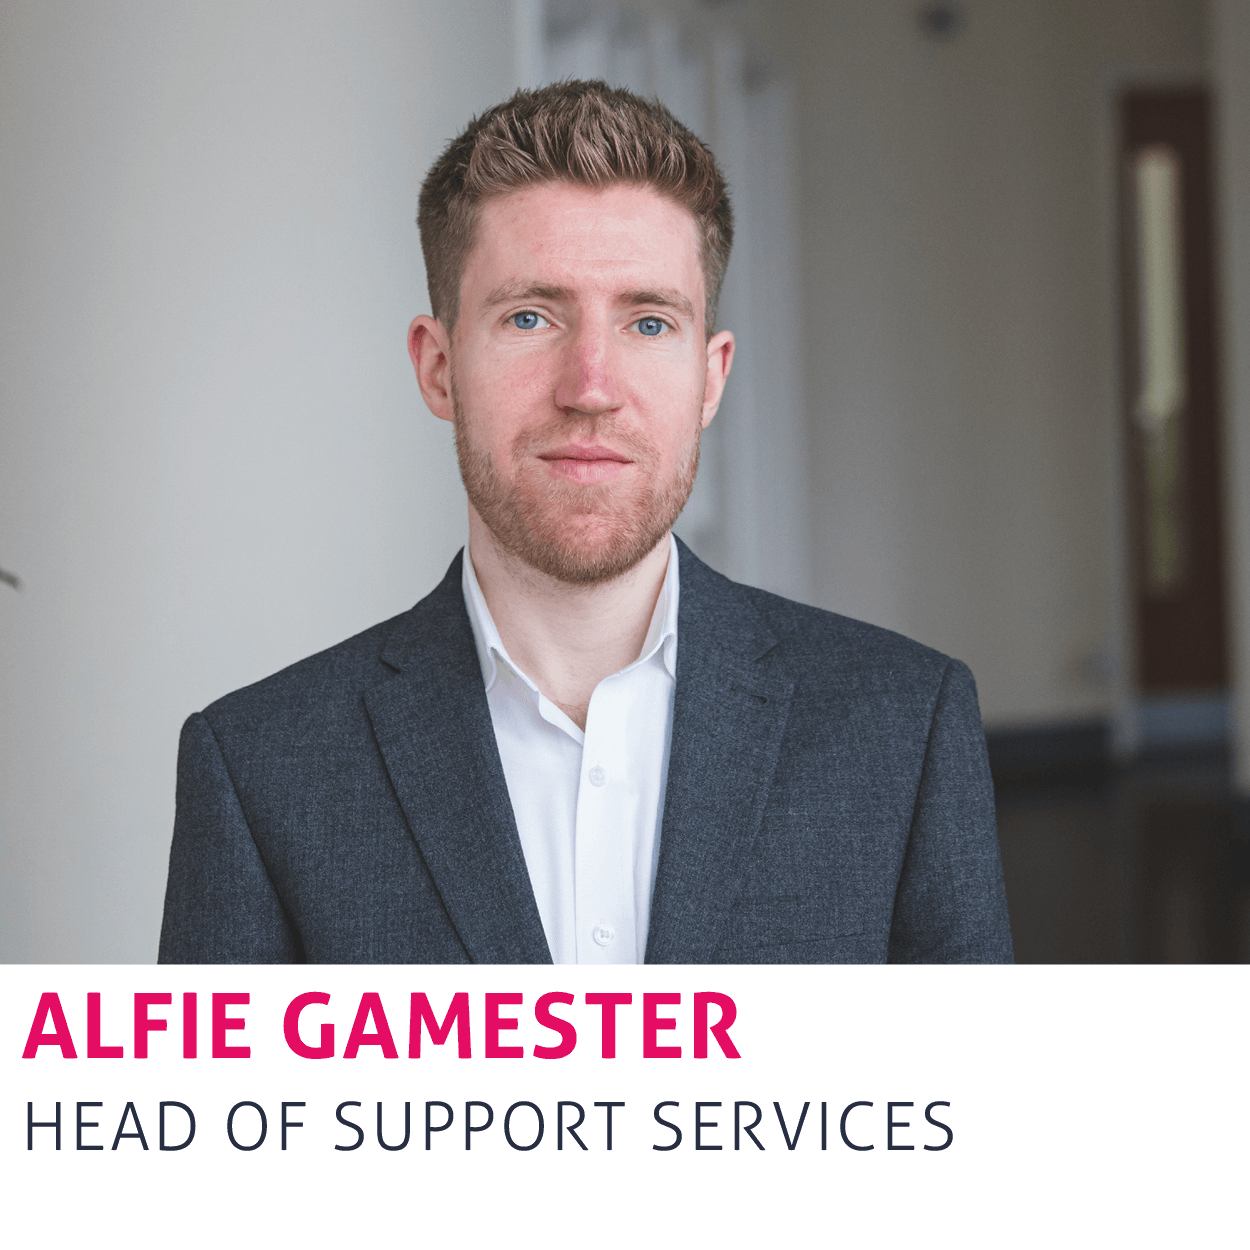 Alfie Gamester, Head of Support Services